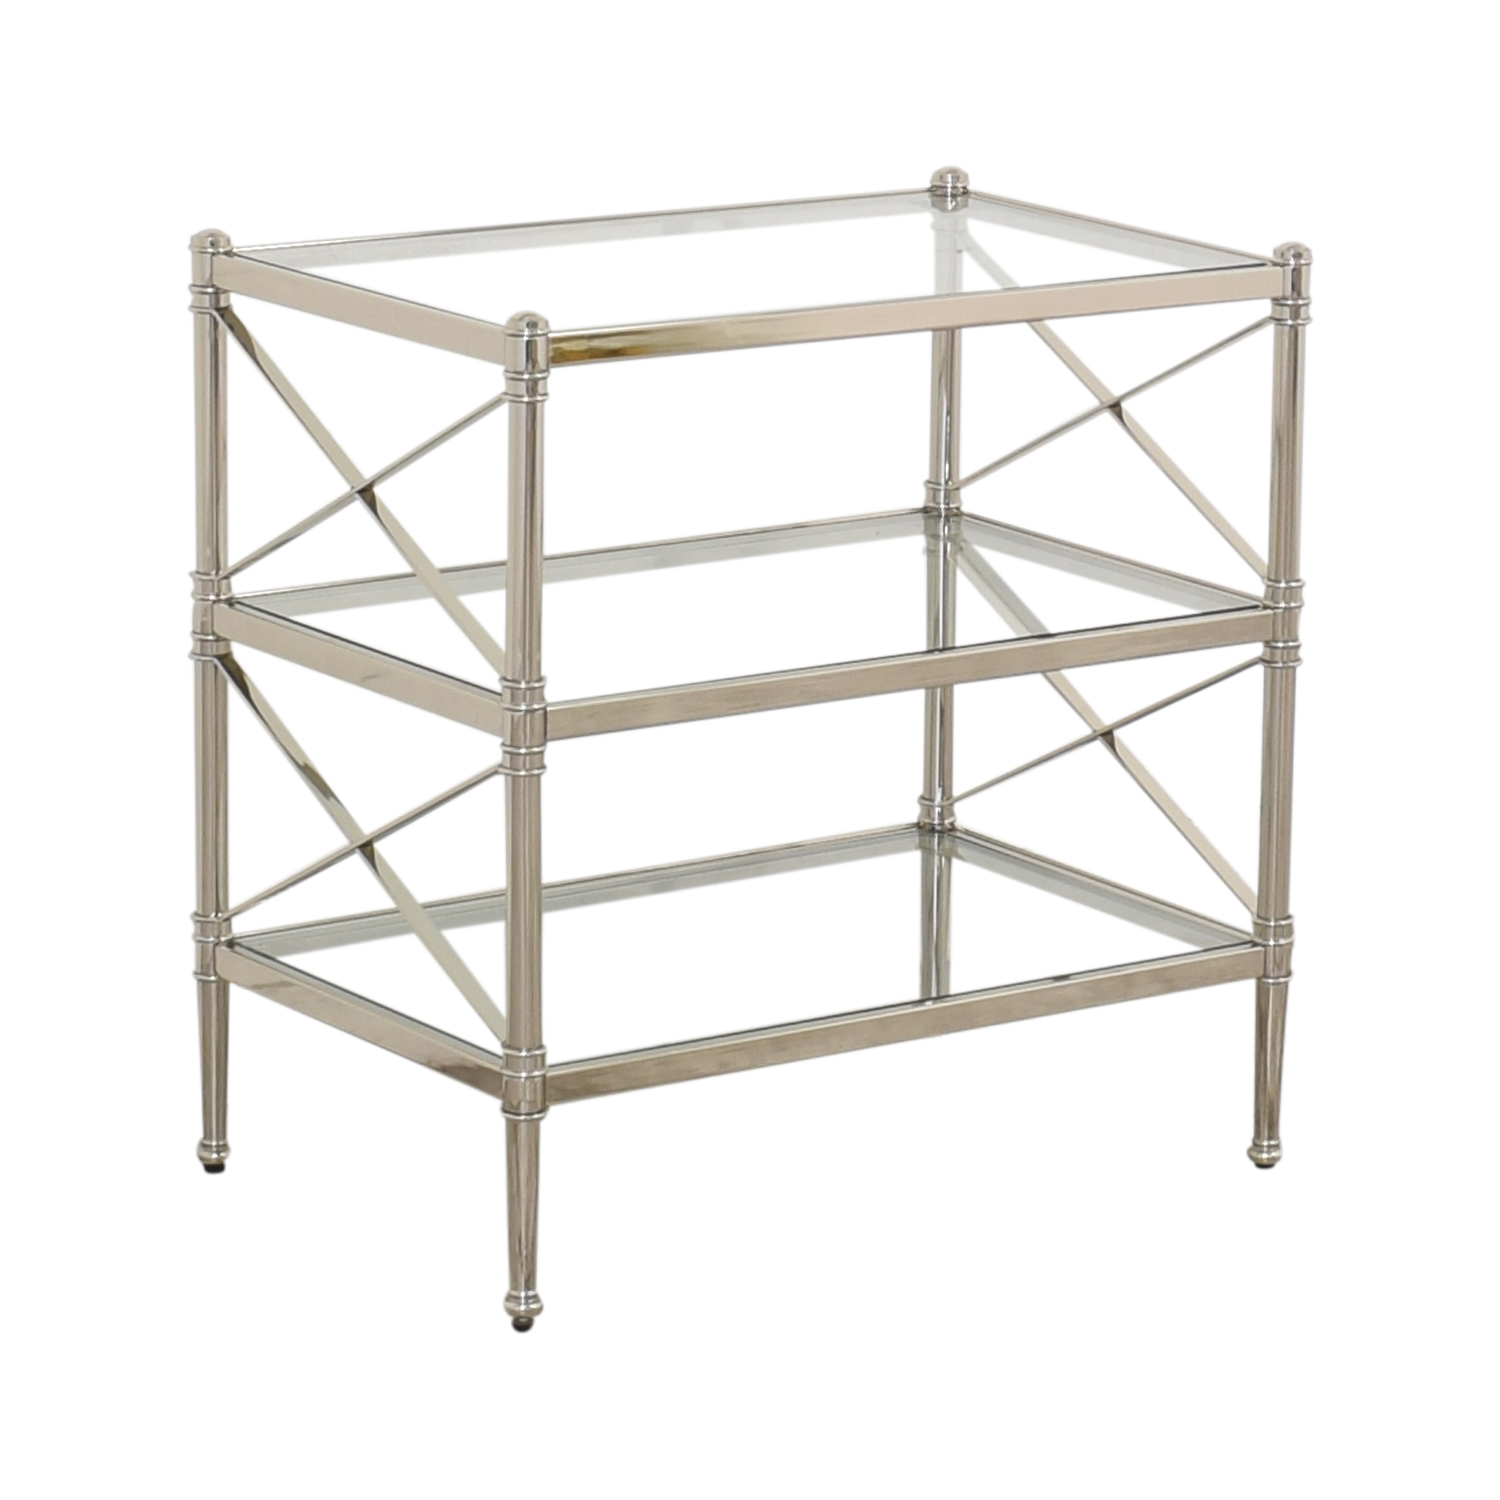 Ethan Allen Ethan Allen Jocelyn Side Table